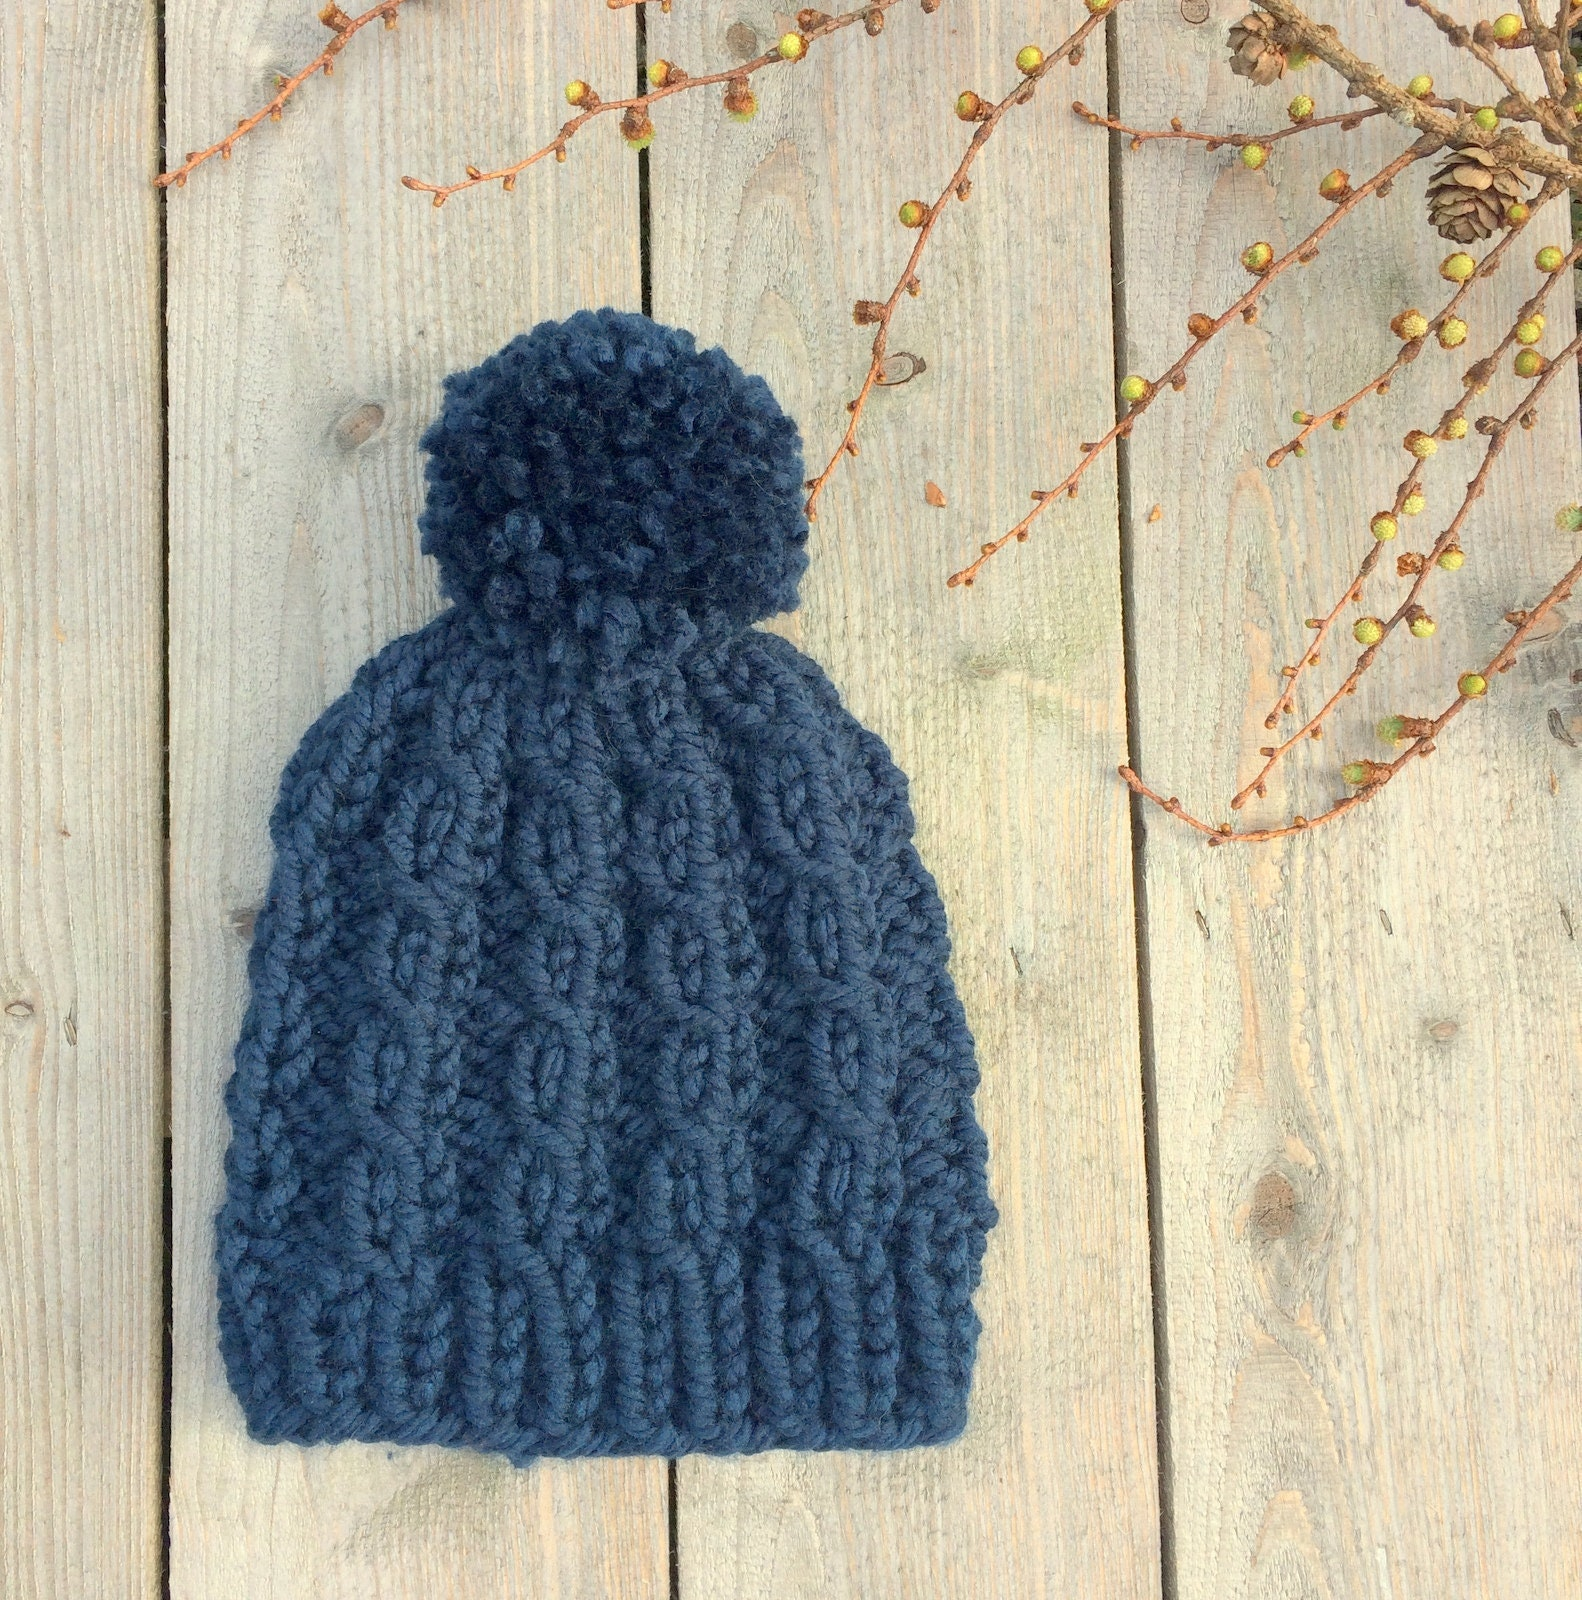 05f33176f44 Women s Chunky Knit Cable Hat with Pompom - Teal Blue - Ready to Ship